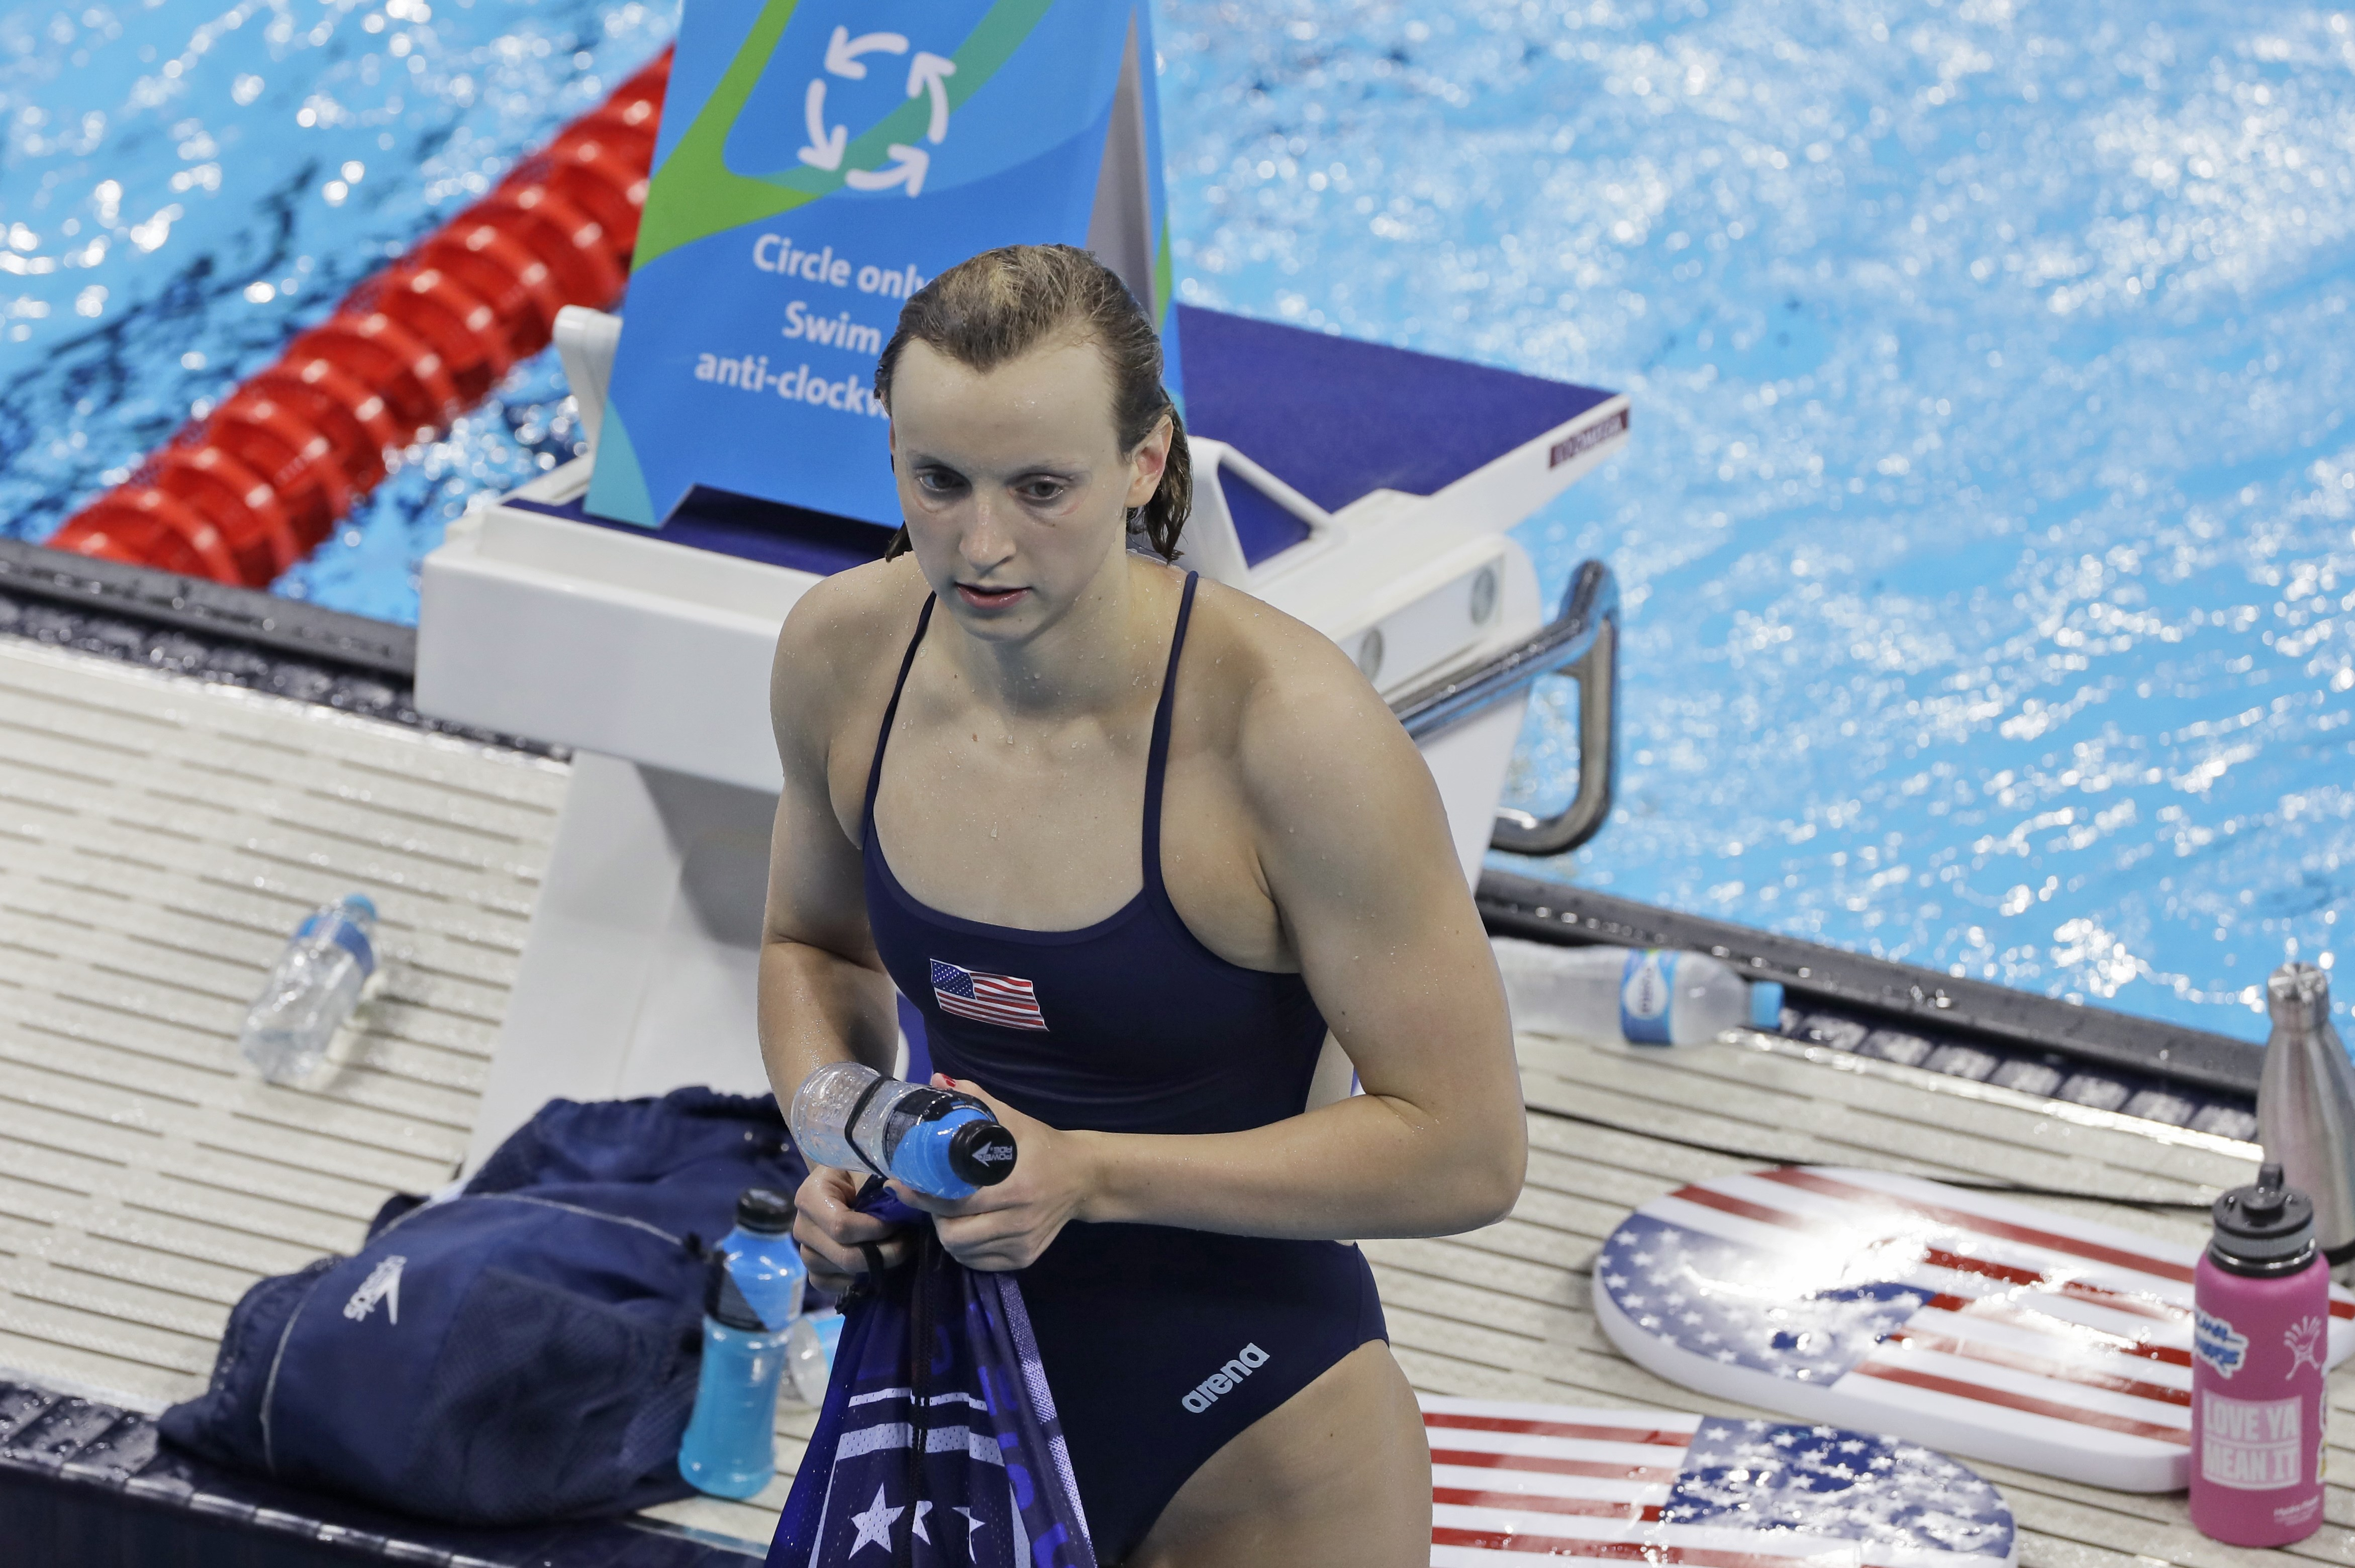 United States' Katie Ledecky leaves the pool after a swimming training session before the 2016 Summer Olympics in Rio de Janeiro, Brazil, Tuesday, Aug. 2, 2016. (AP Photo/Matt Slocum)